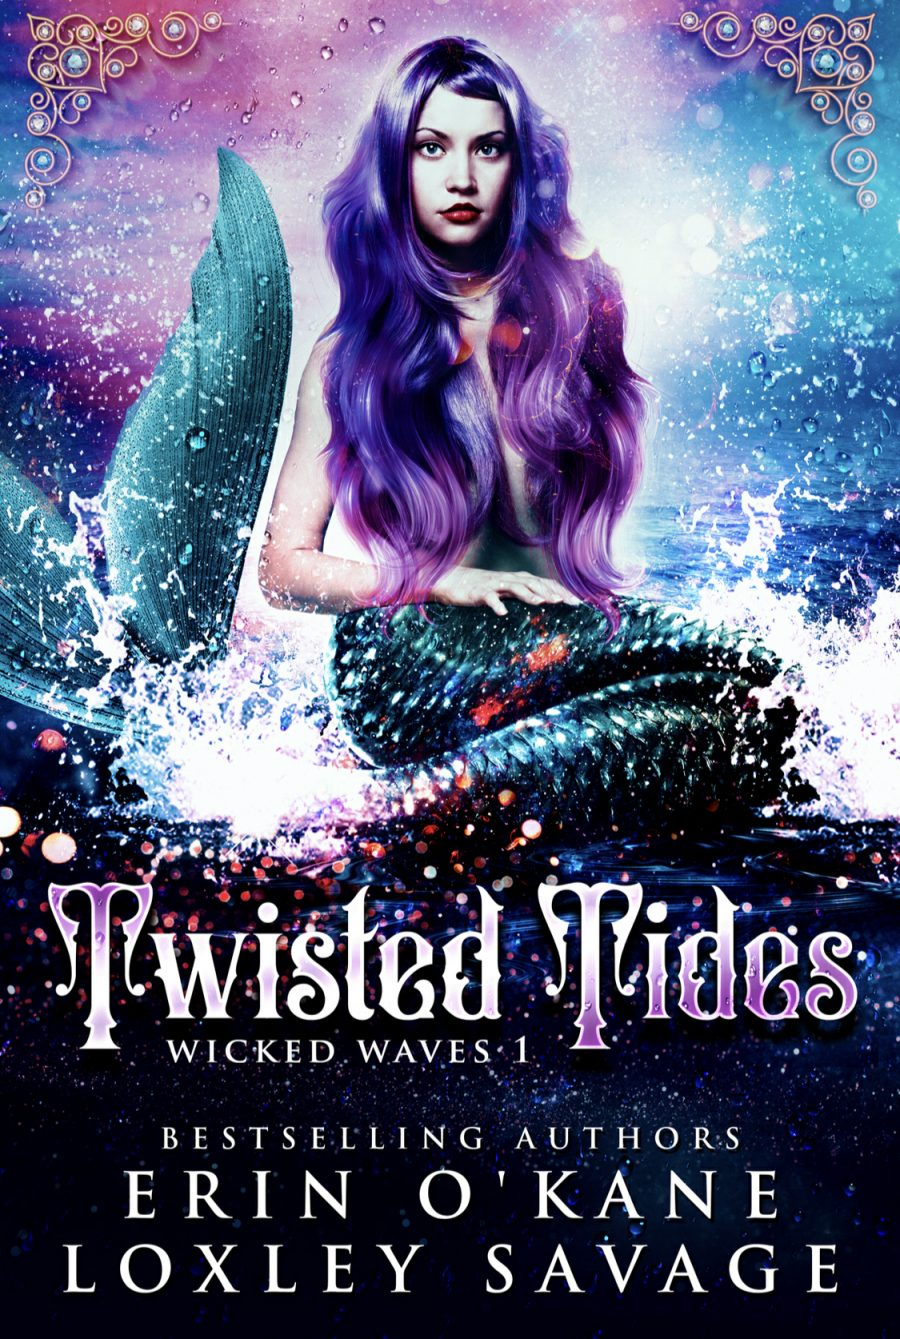 Twisted Tides by Erin O'Kane & Loxley Savage - A Book Review #BookReview #FastBurn #ReverseHarem #RH #WhyChoose #Fantasy #PNR #Dark #Mermaids #Kraken #4Stars